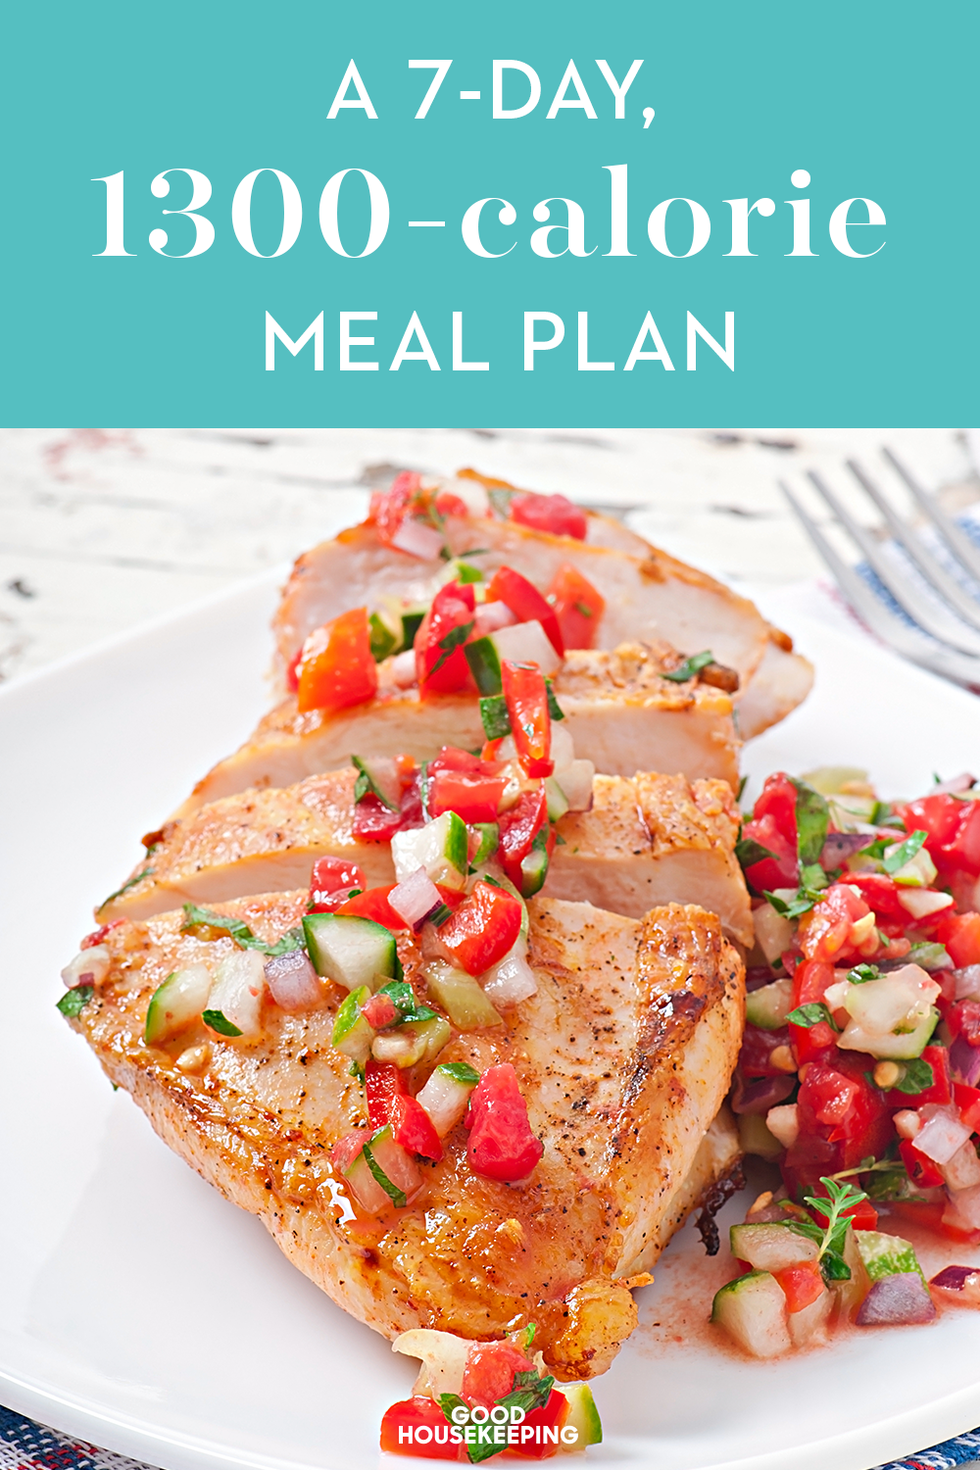 This 7-Day, 1,300-Calorie Meal Plan Packs in All the Snacks #ketomealplan